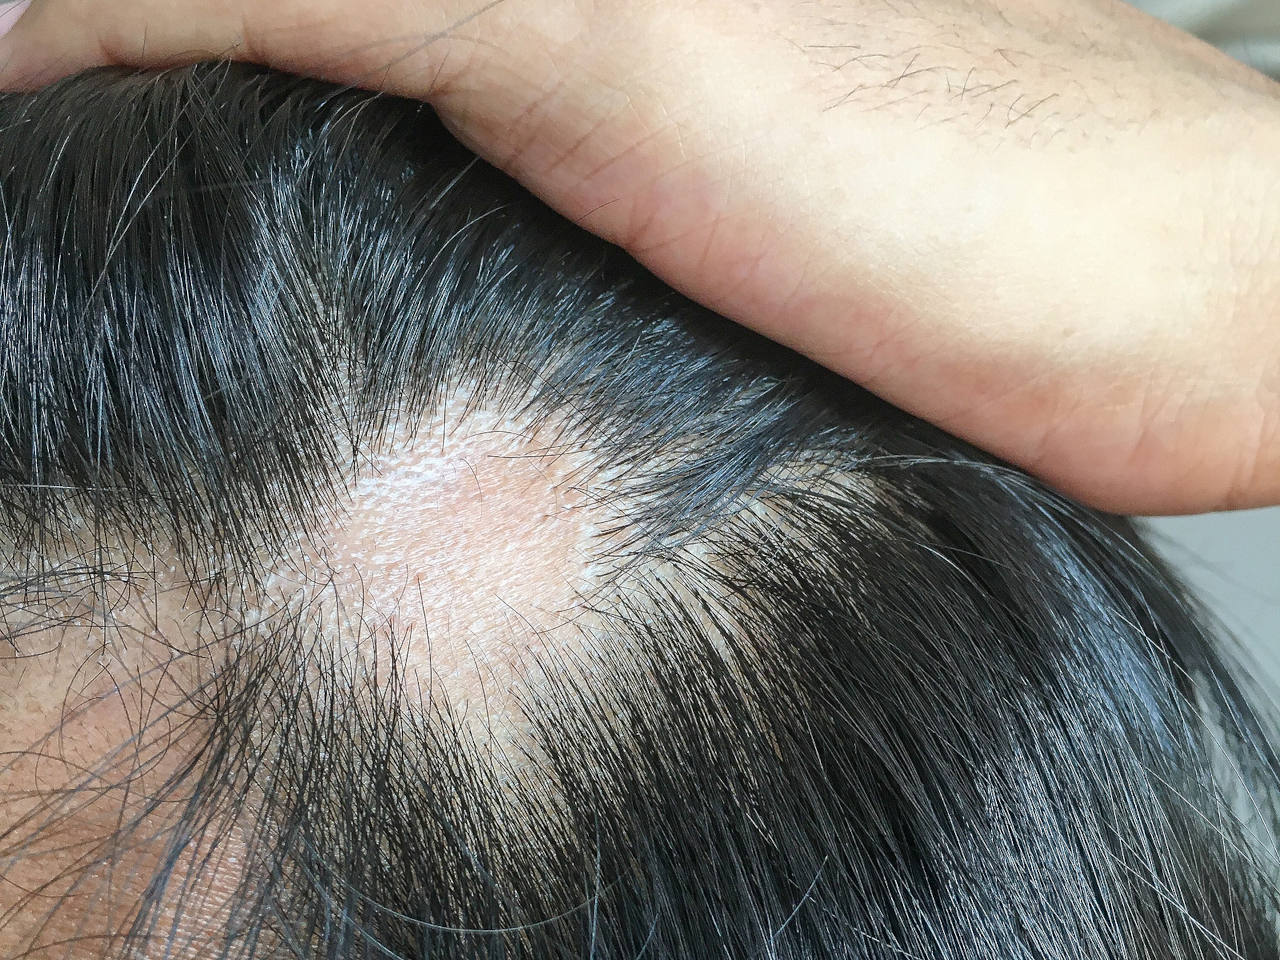 A scar on a scalp has caused a visible bald spot